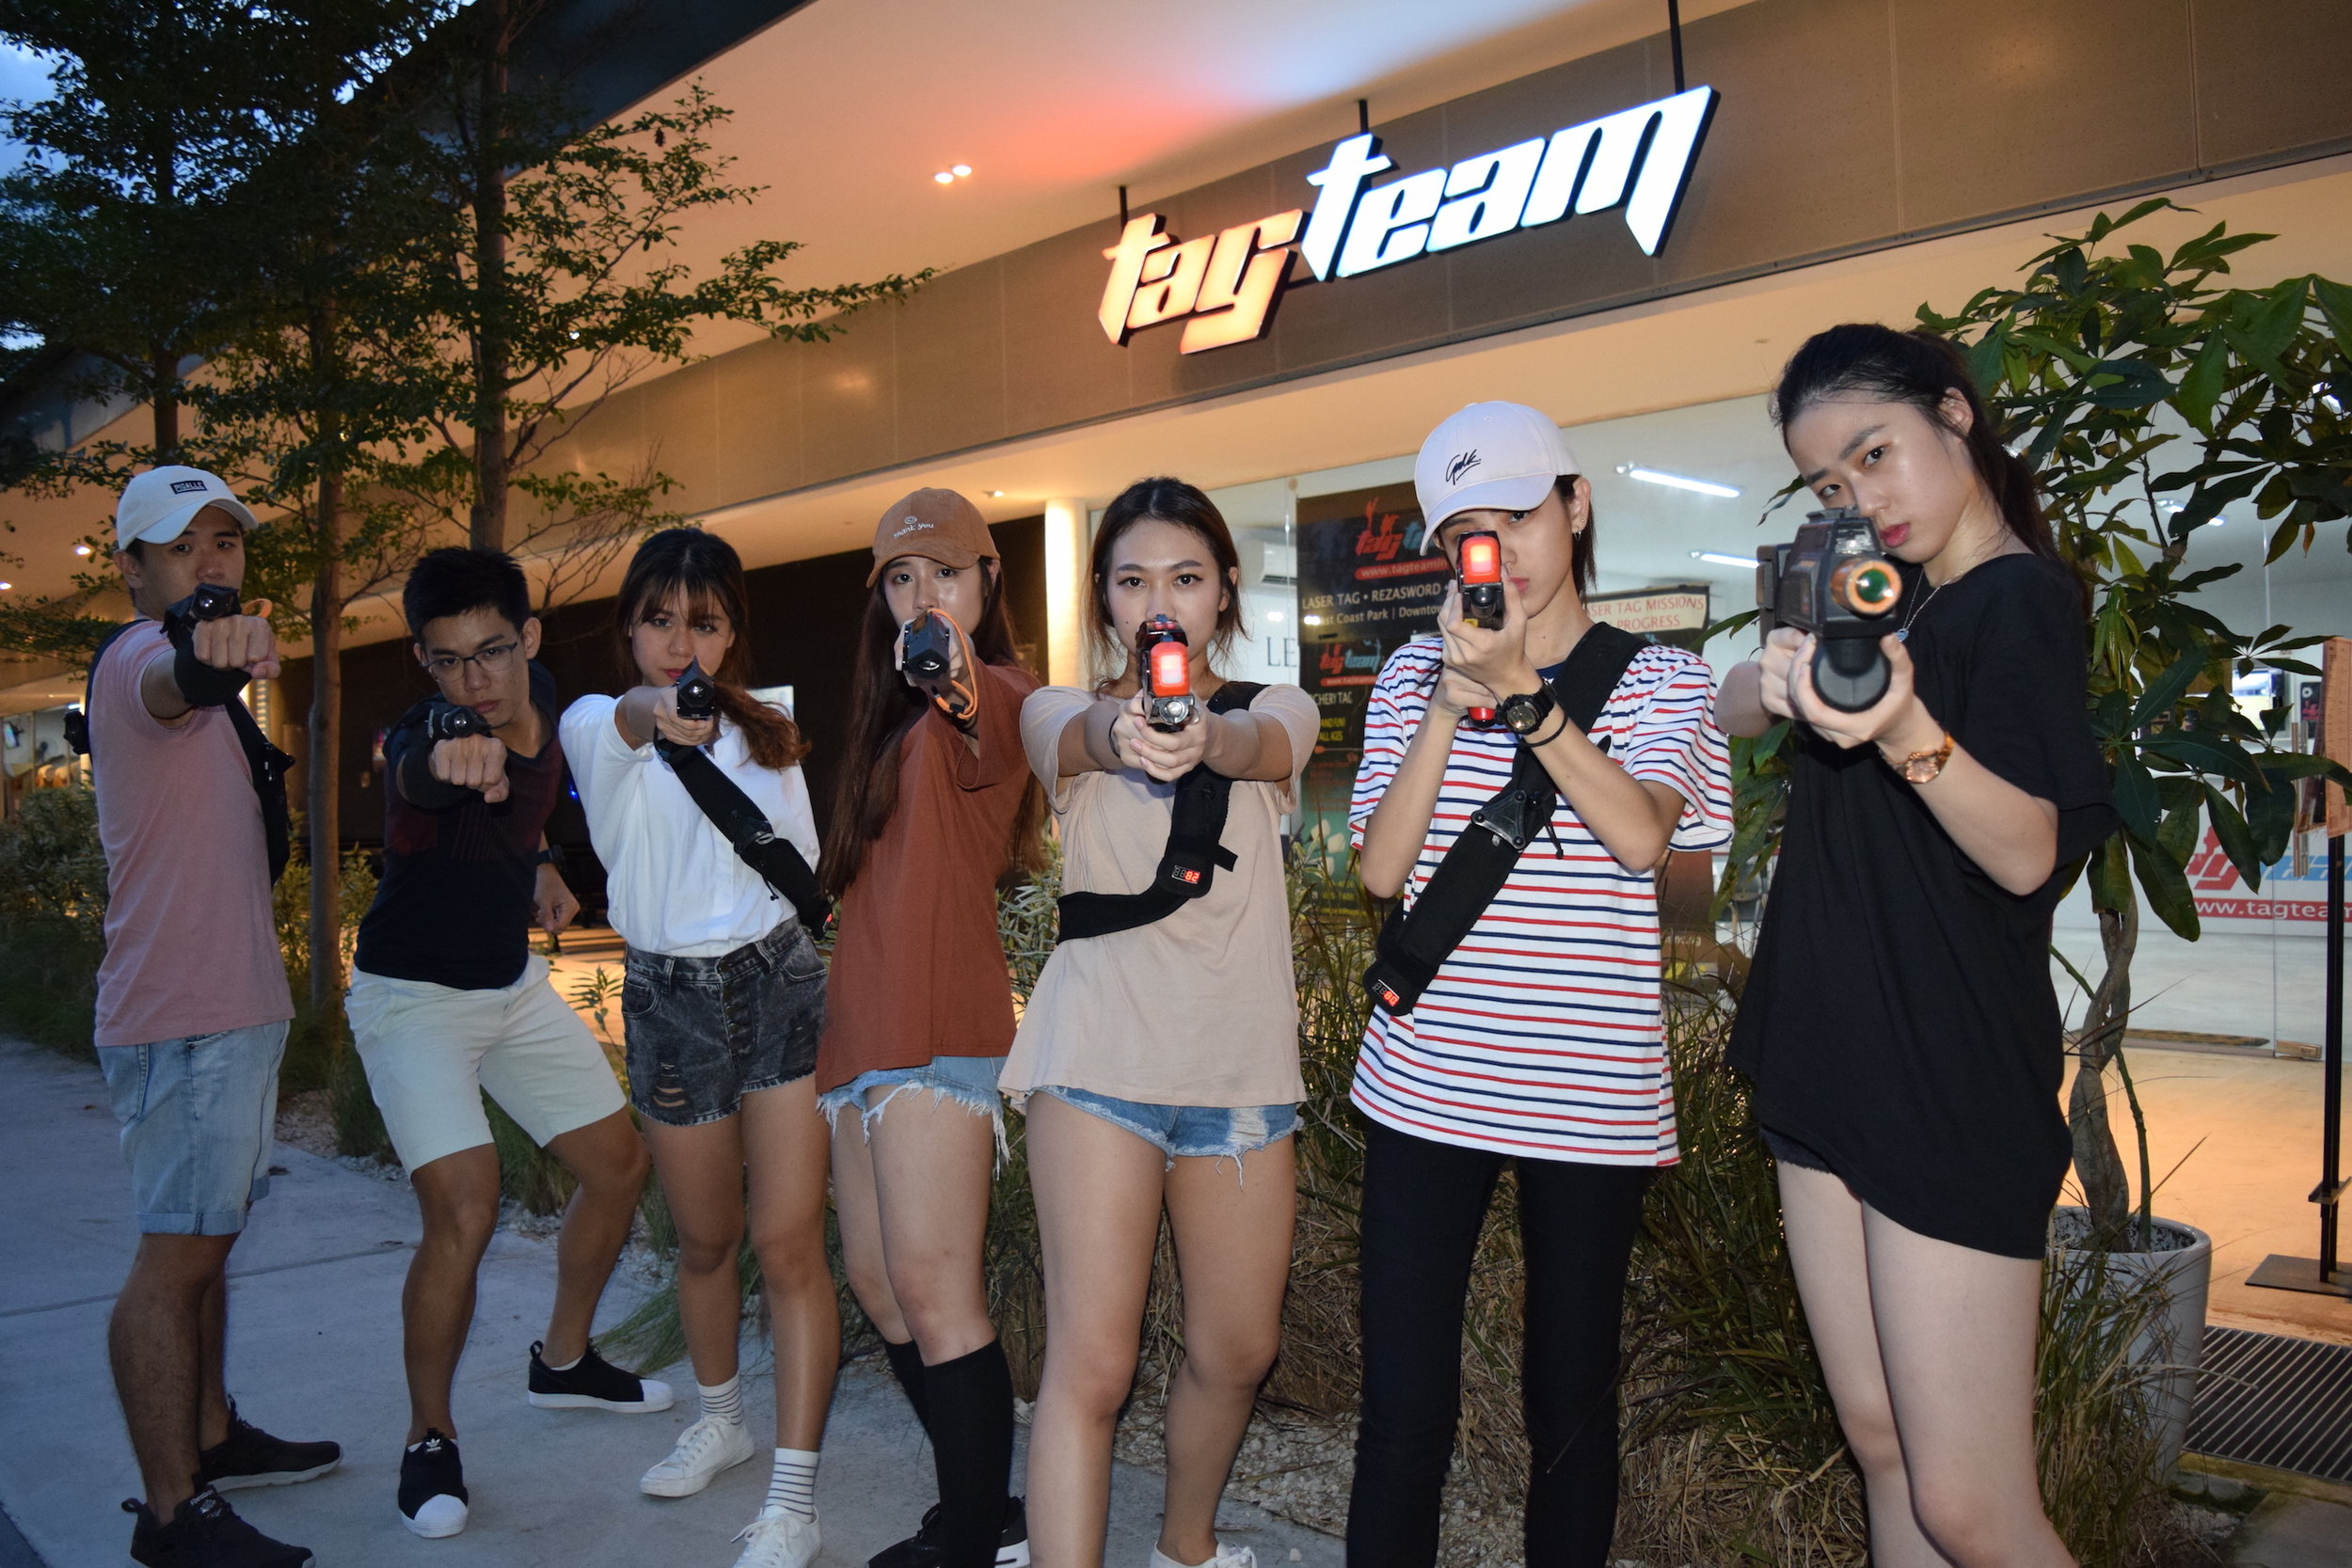 laser tag team building cohesion birthday parties events company 2 group shot 2 smaller jpg